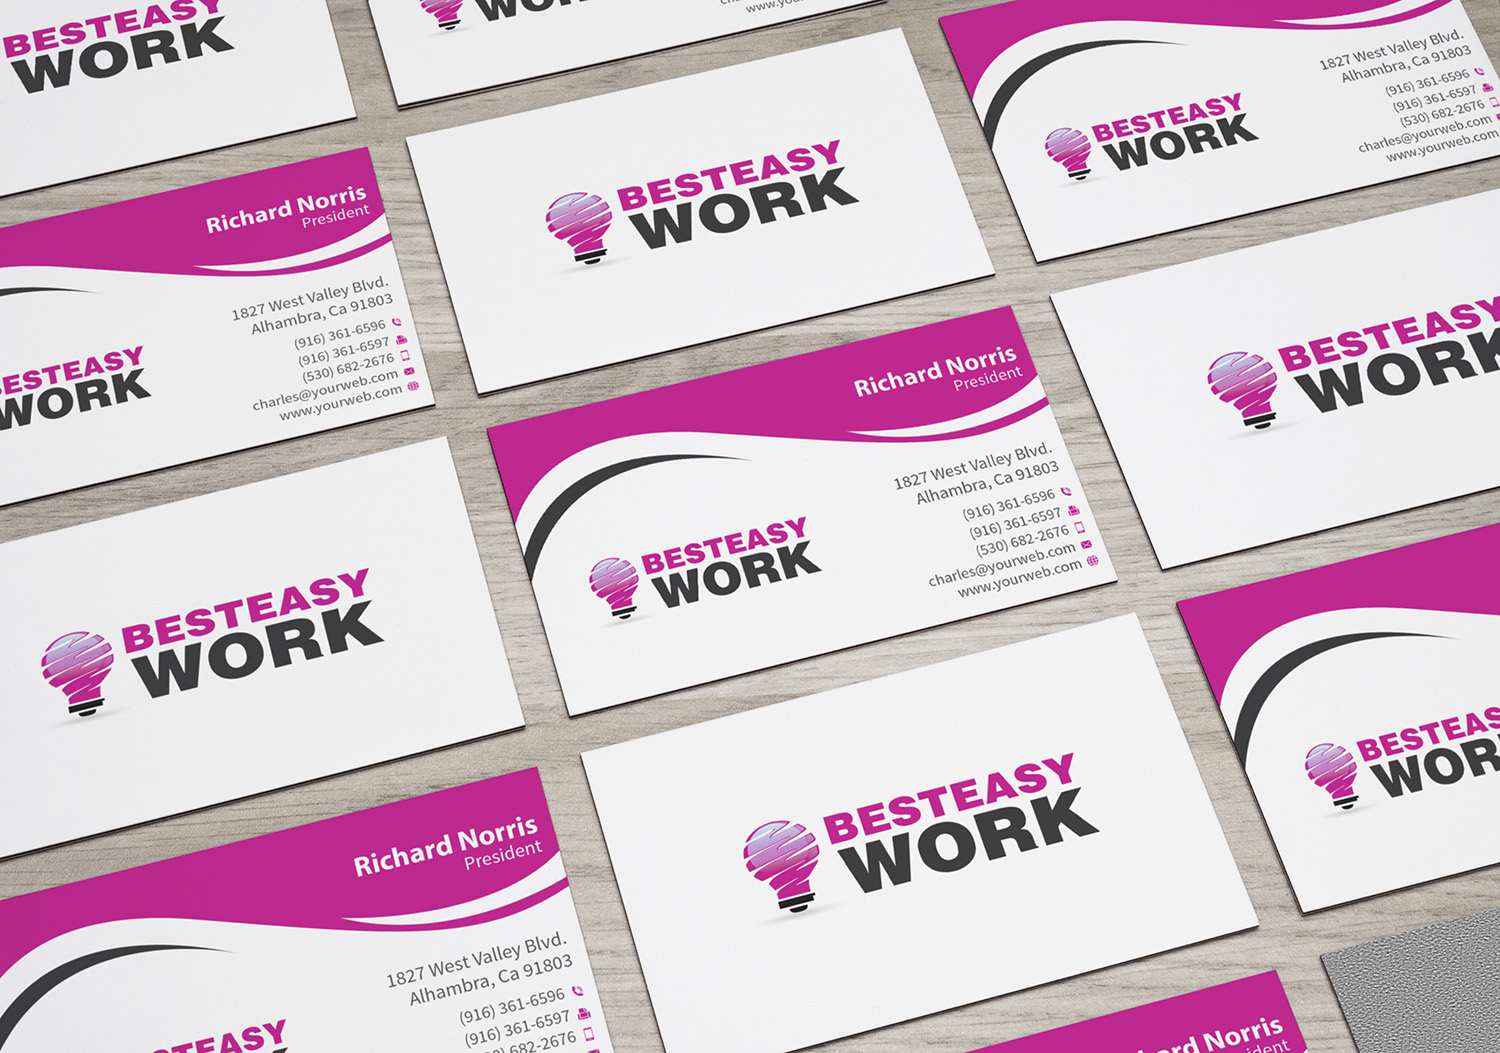 Business business card design for best easy work by business business card design for best easy work in united states design 16895493 colourmoves